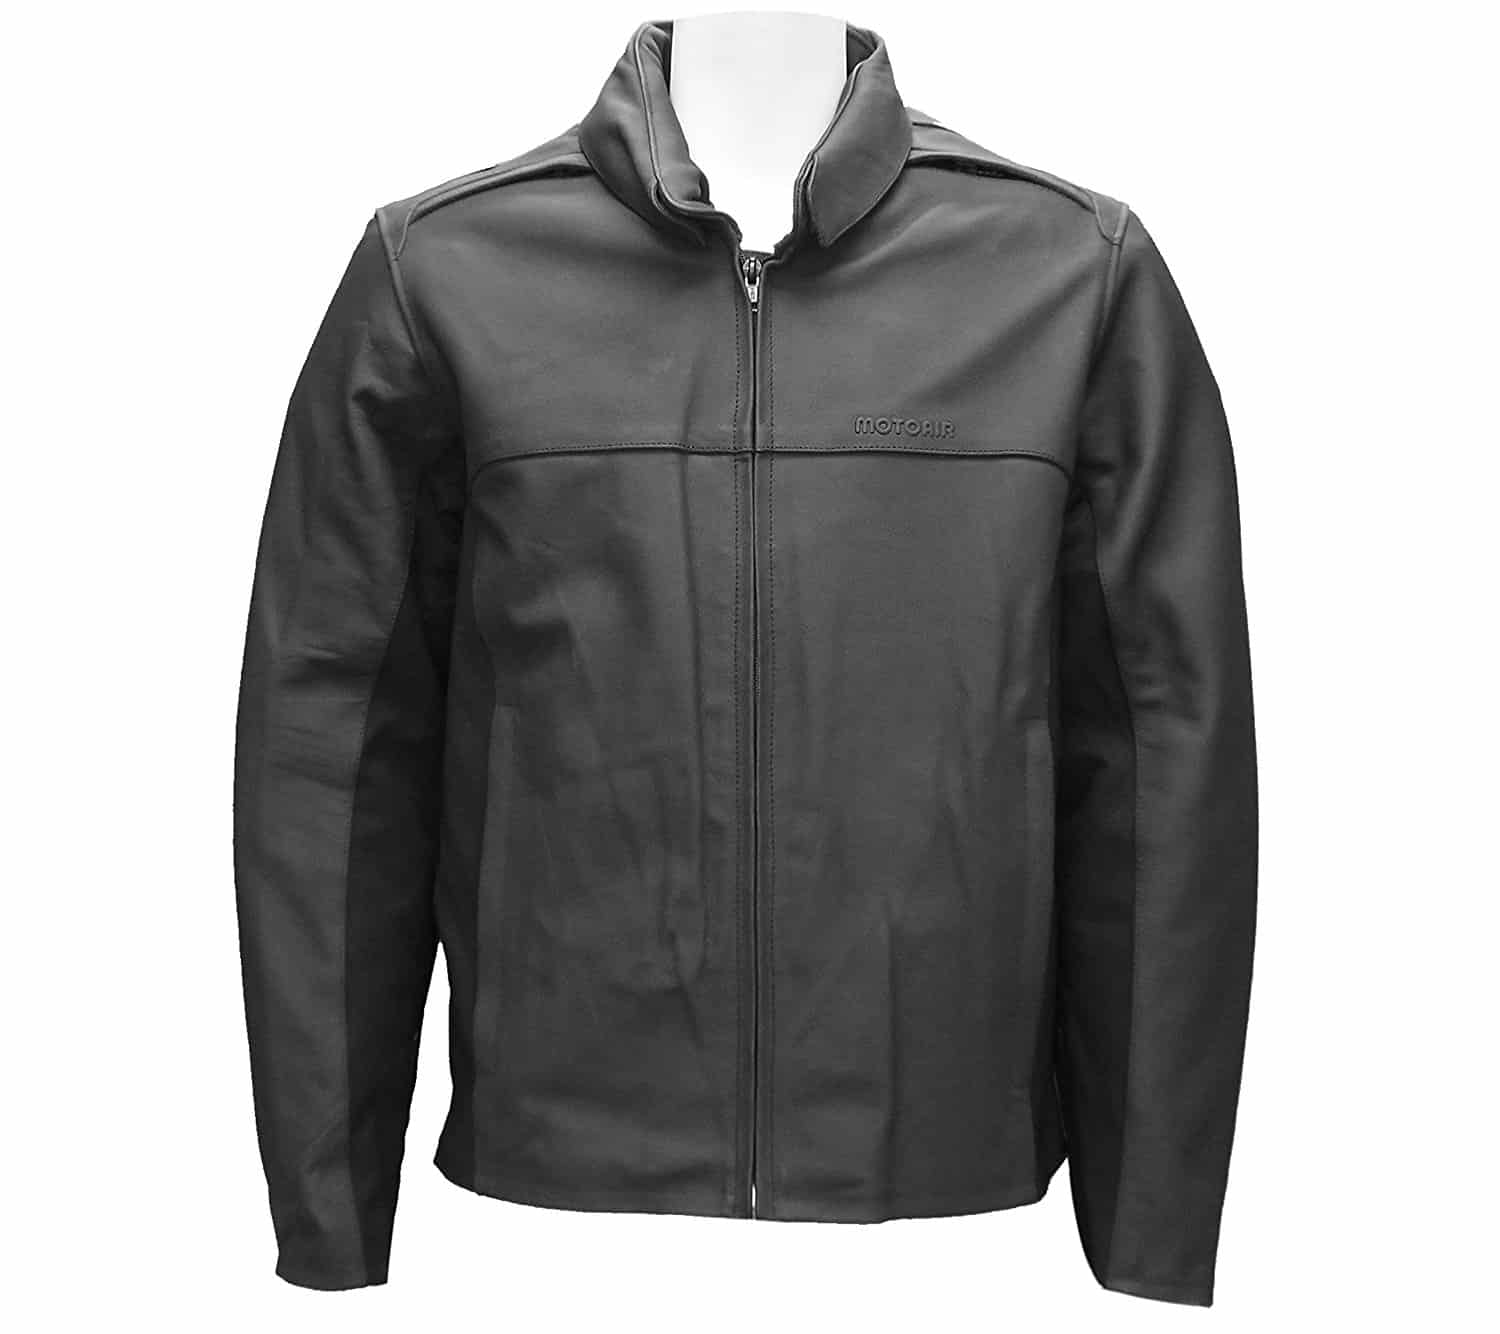 MotoAir L-300 Motocycle Airbag Leather Jacket